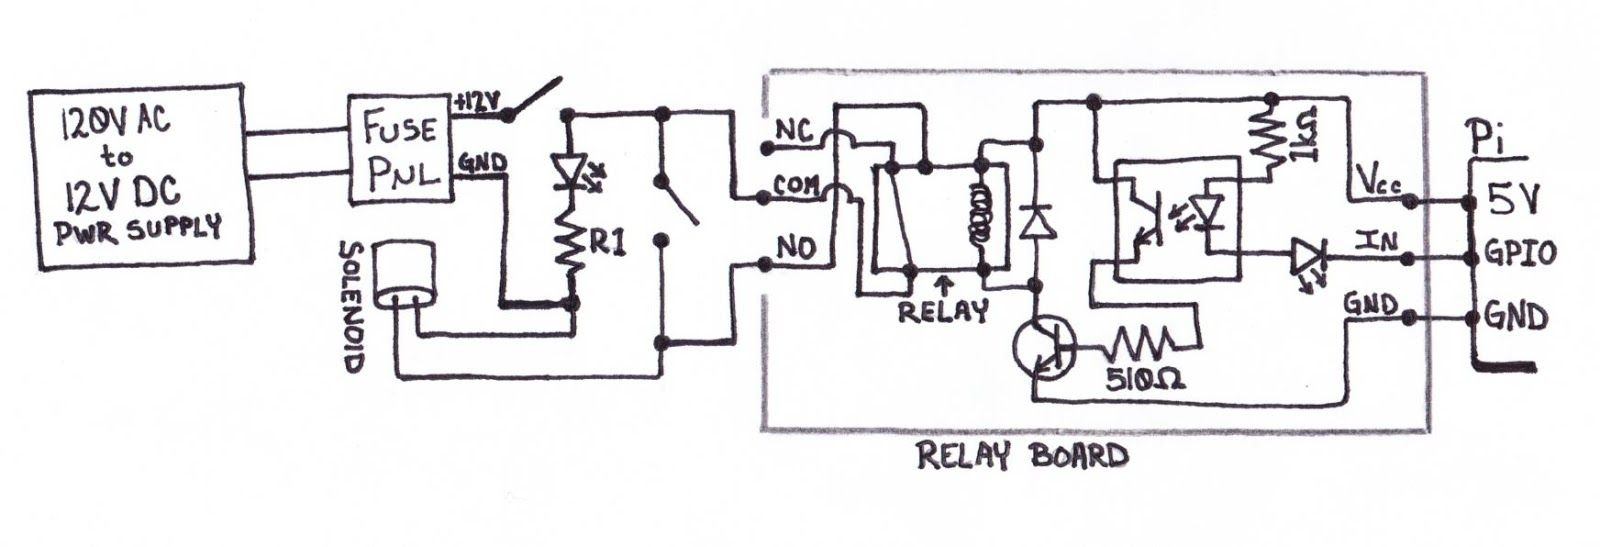 circuit diagram for operating a solenoid valve with a raspberry pi to control sprinklers to water the garden raspberry pi solenoid valve sprinklers  [ 1600 x 547 Pixel ]